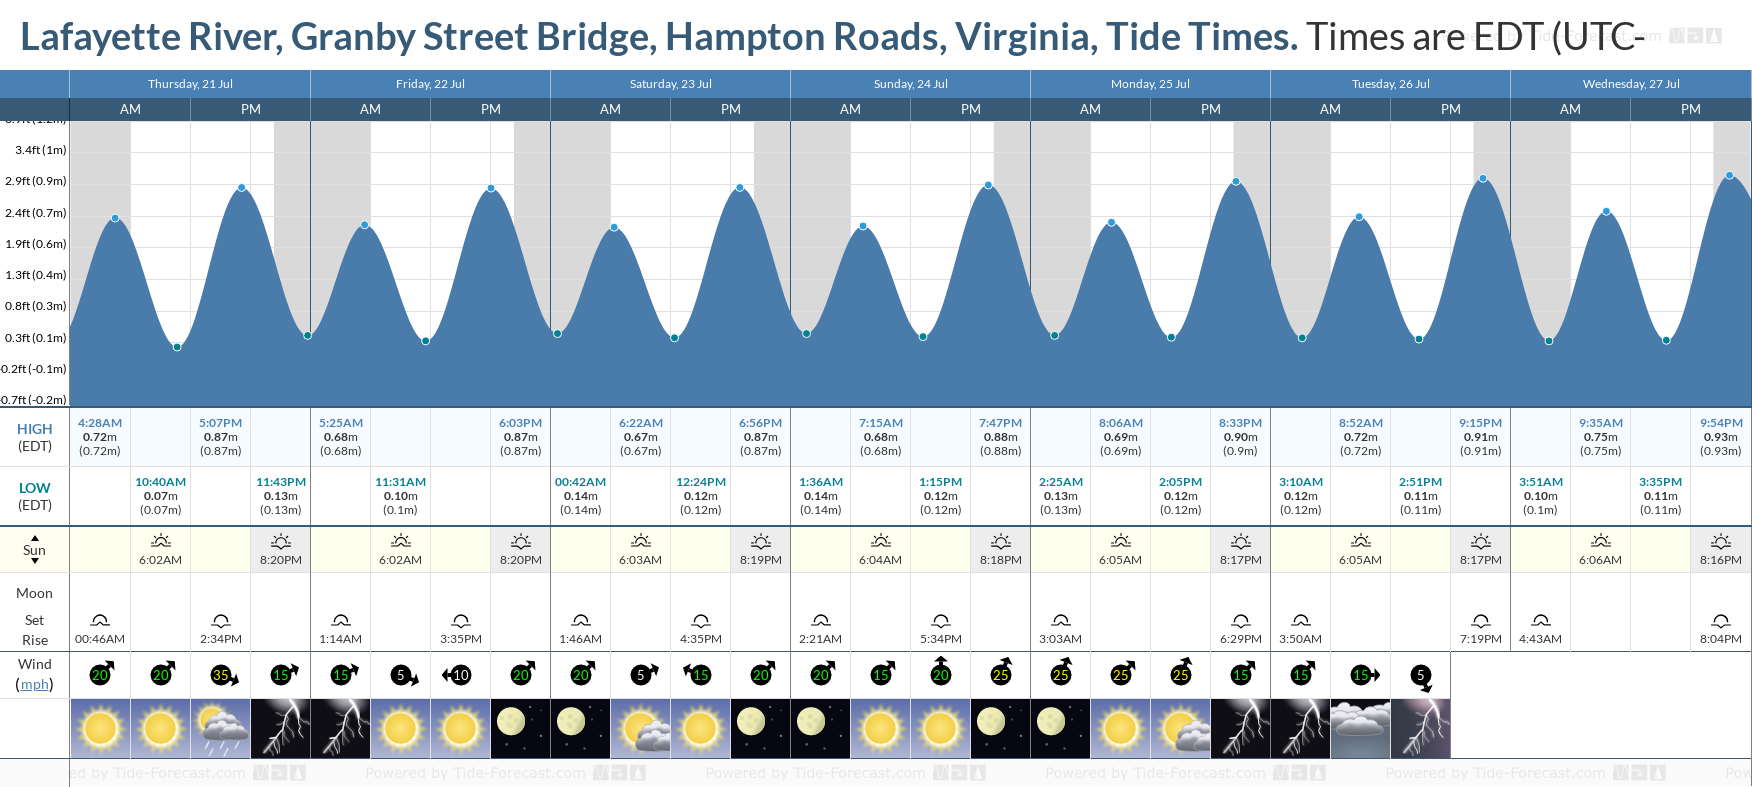 Lafayette River, Granby Street Bridge, Hampton Roads, Virginia Tide Chart including high and low tide tide times for the next 7 days